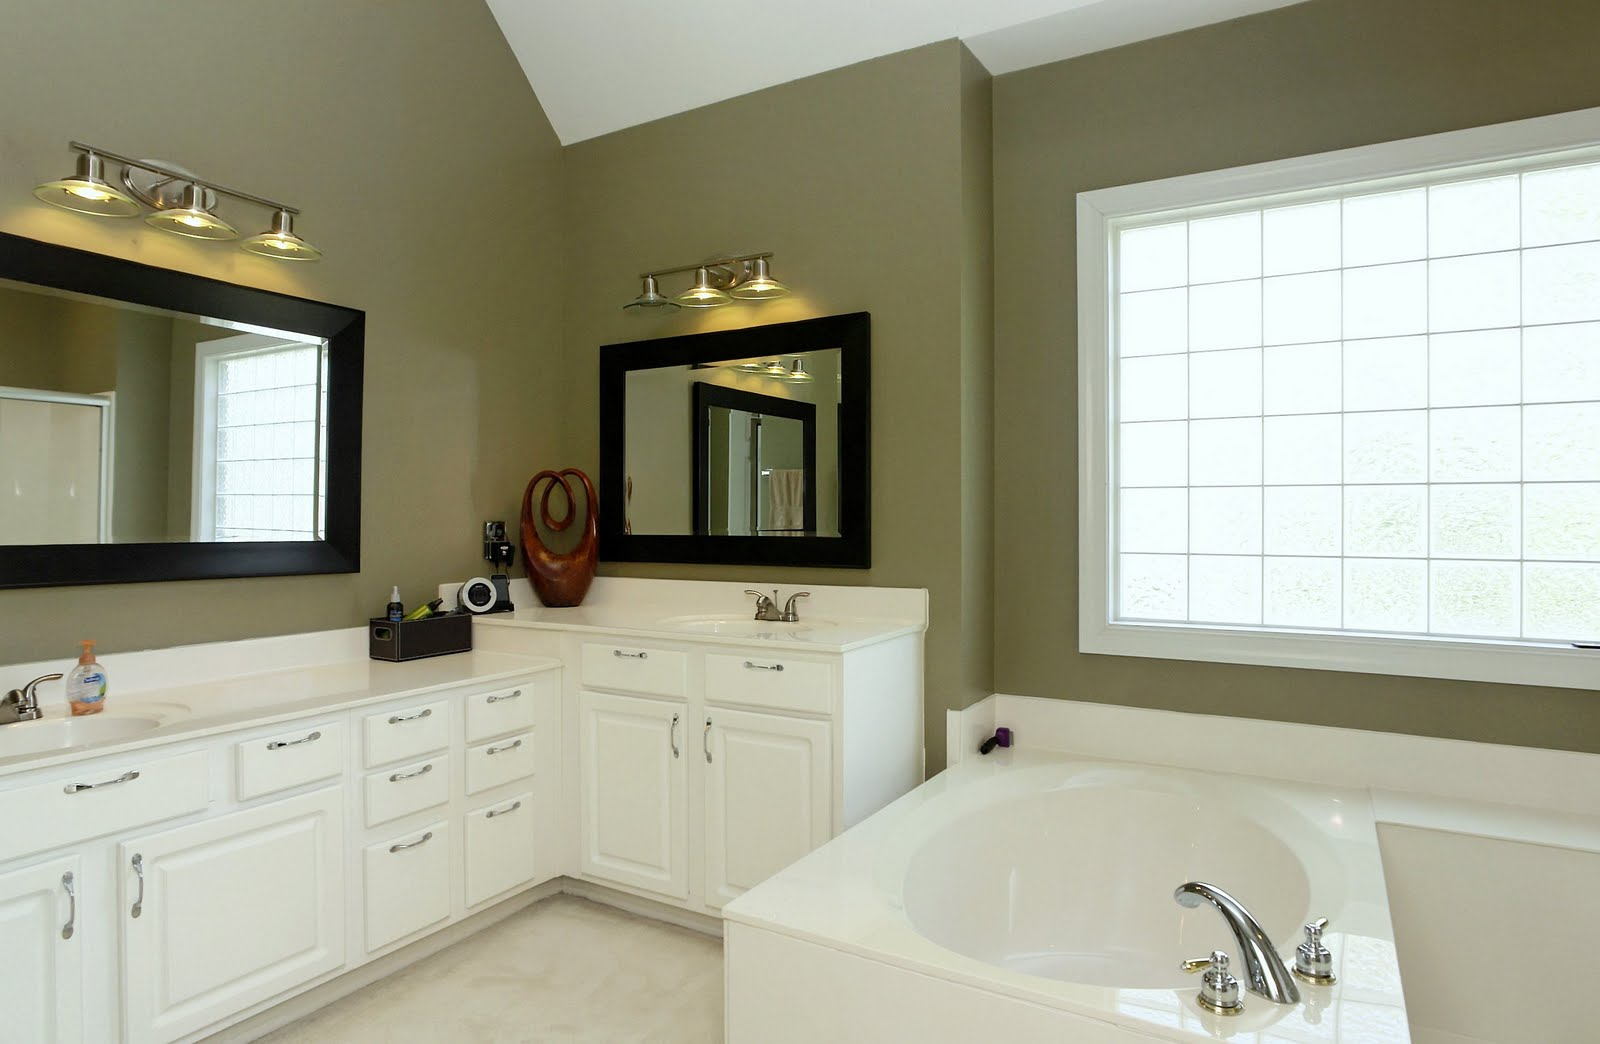 Bathrooms With Cathedral Ceilings